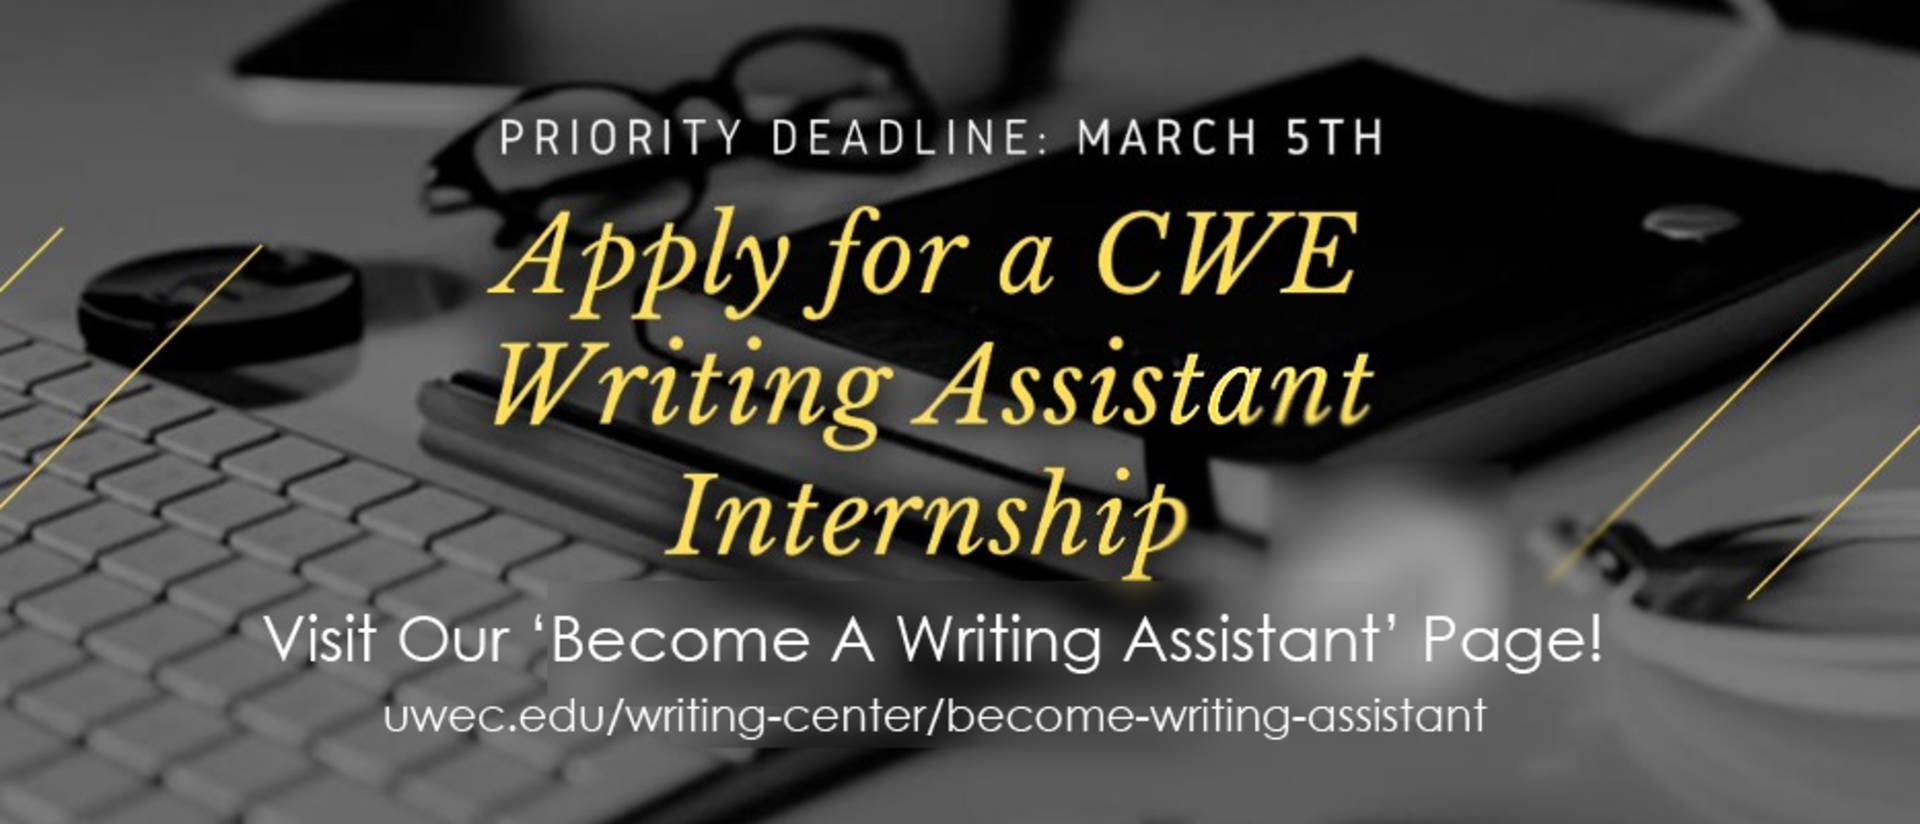 Apply to become a CWE Writing Assistant Intern!